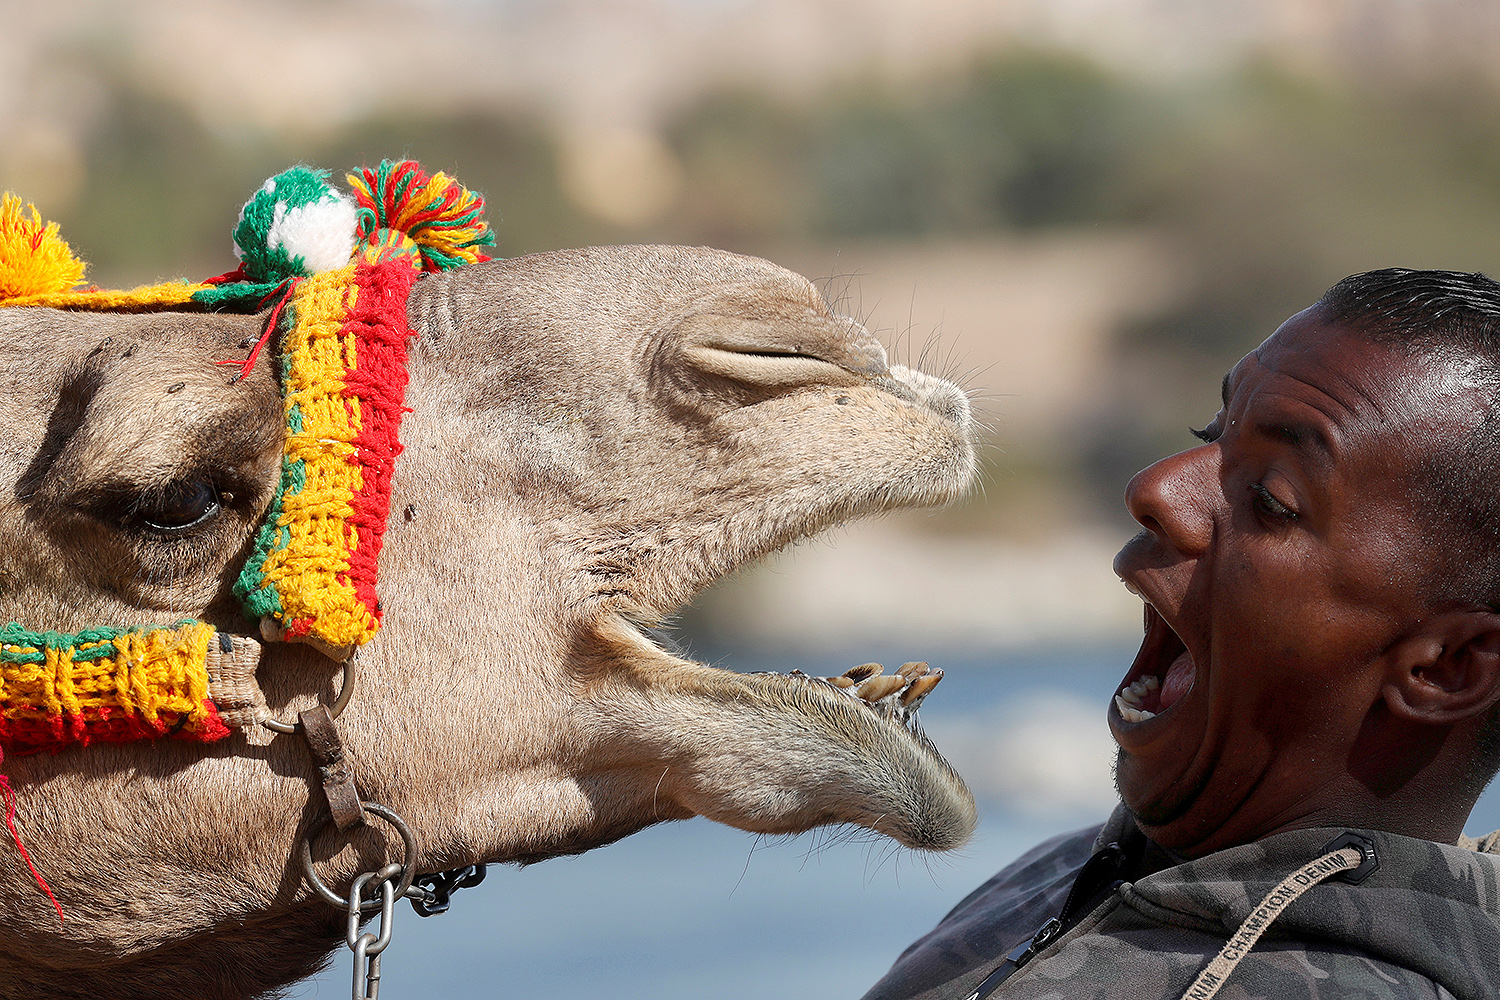 These faces. Hossam Nasser, 32, plays with his camel Anter on the west bank of the Nile river in Aswan, Egypt, on Feb. 19. Amr Abdallah Dalsh/REUTERS